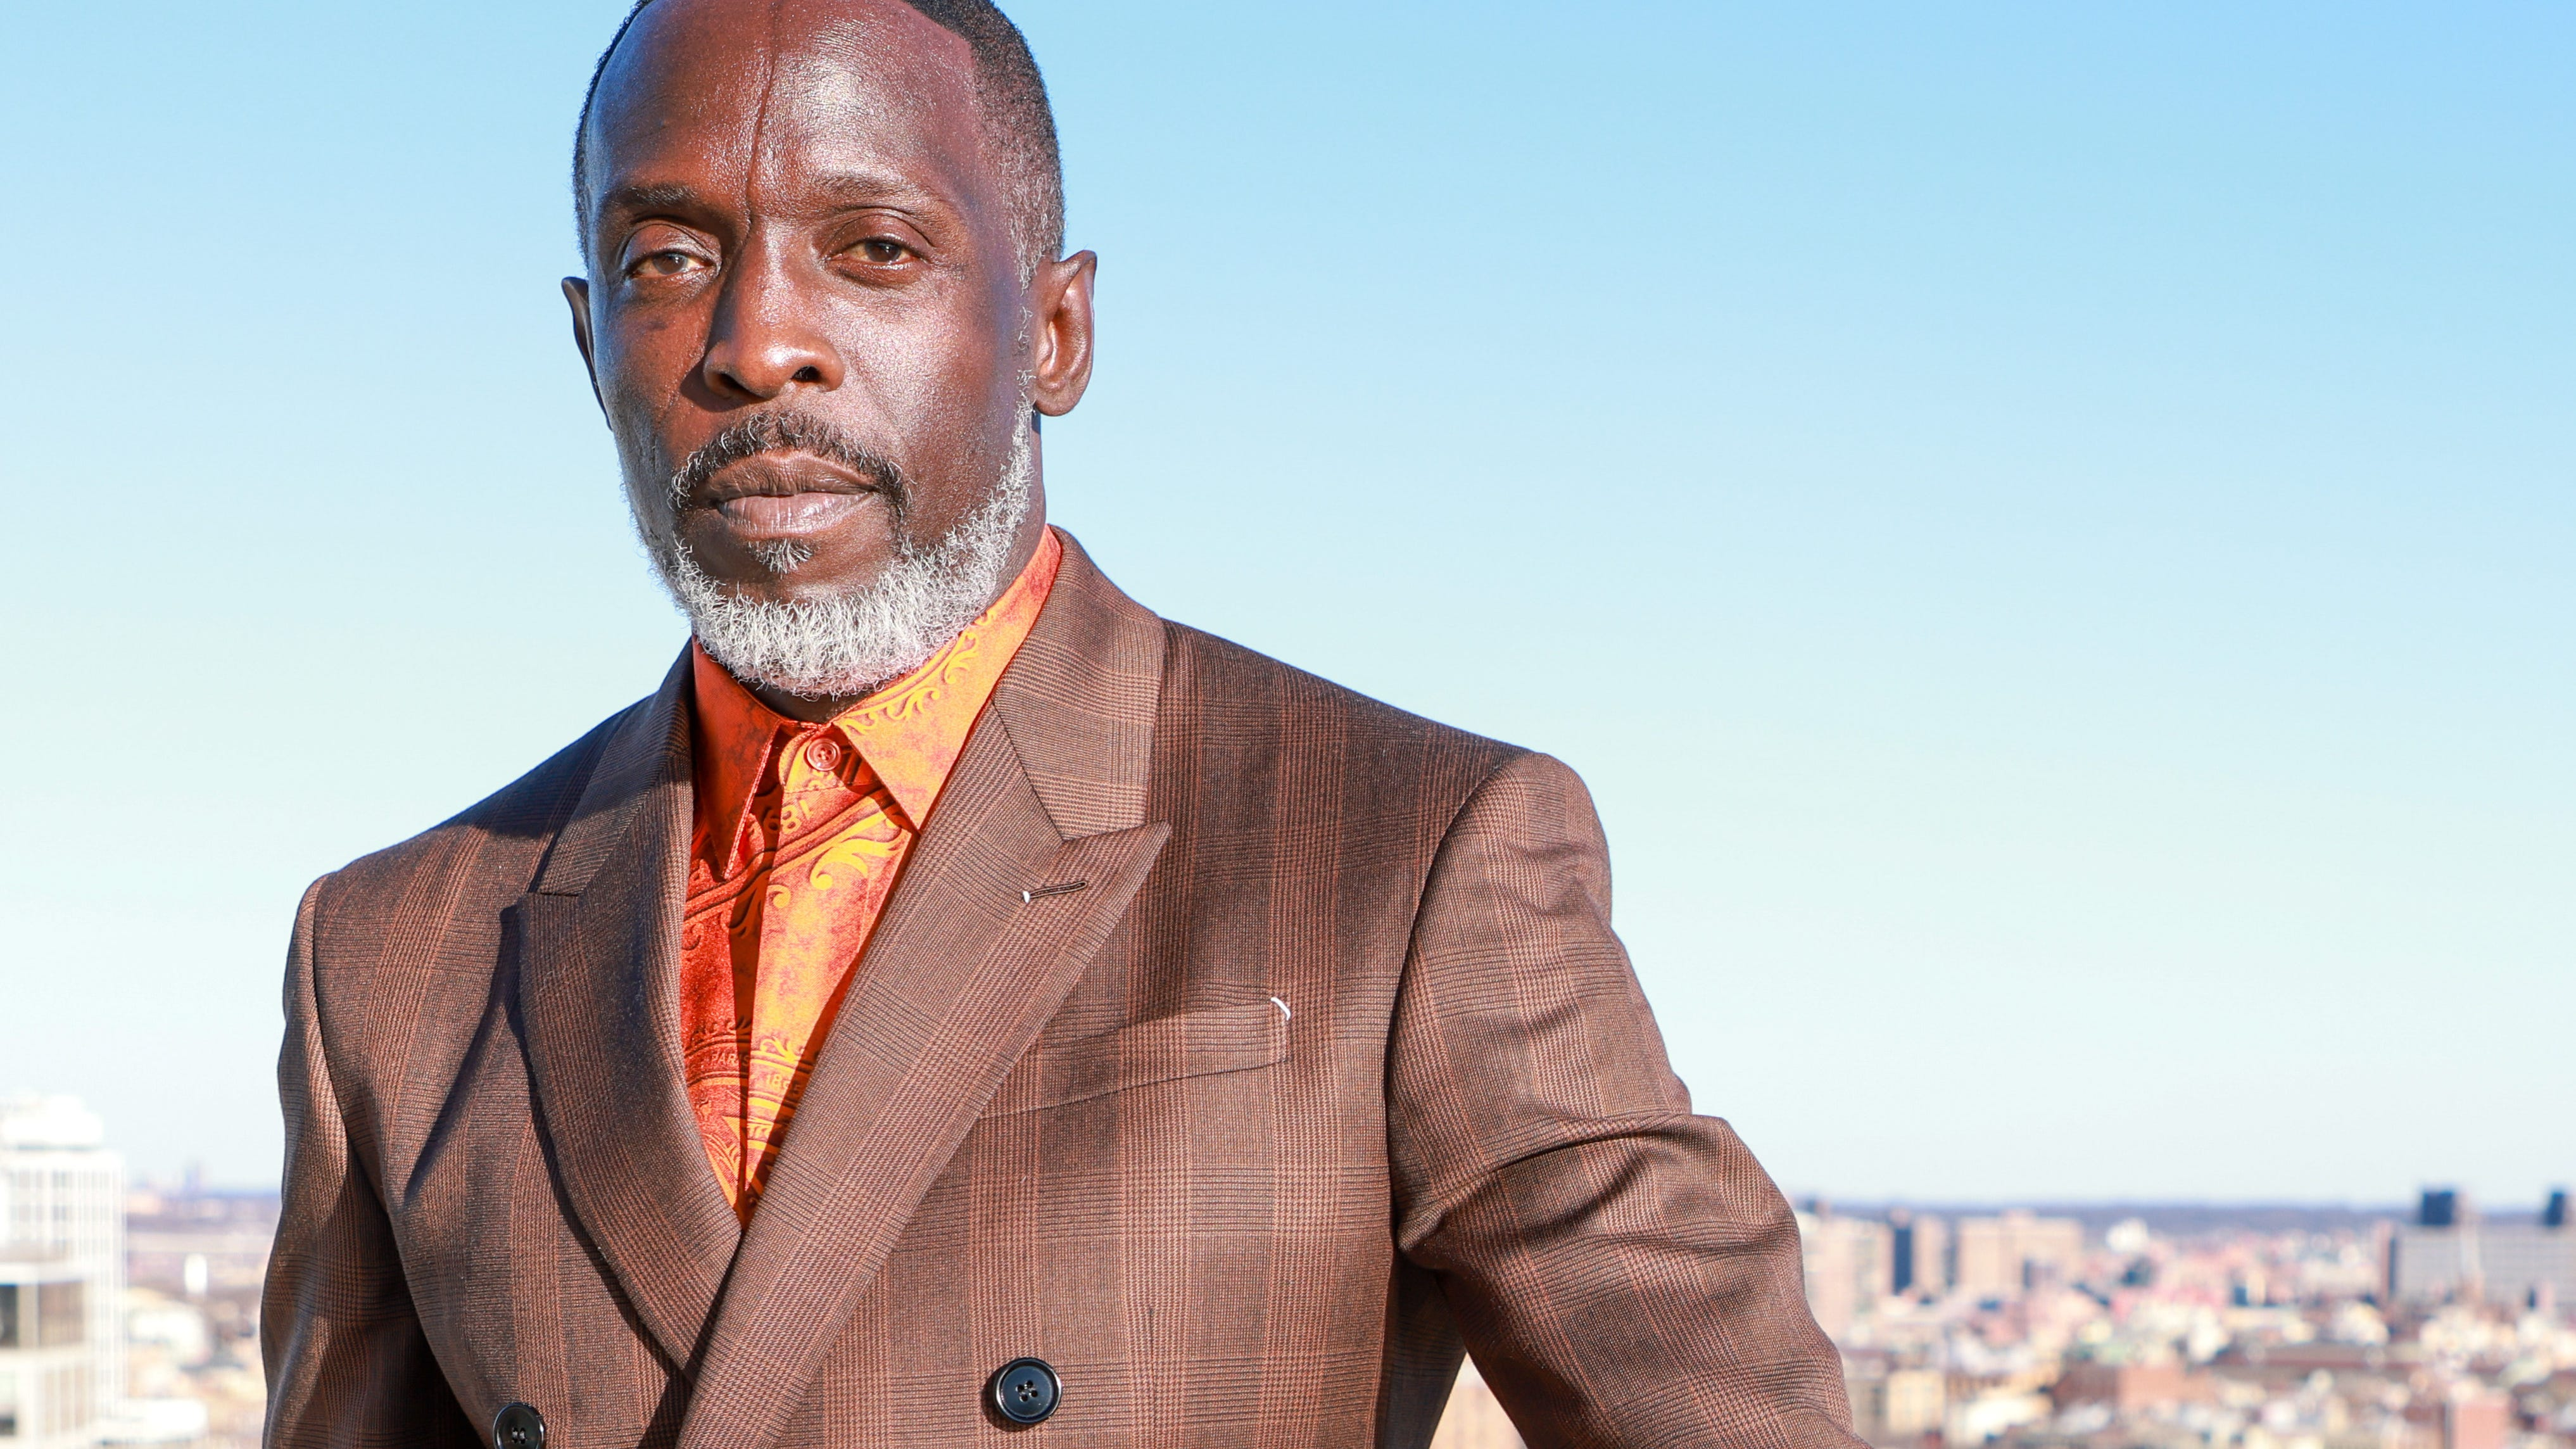 Michael K. Williams looked to collaborate with NYPD before his death: commissioner